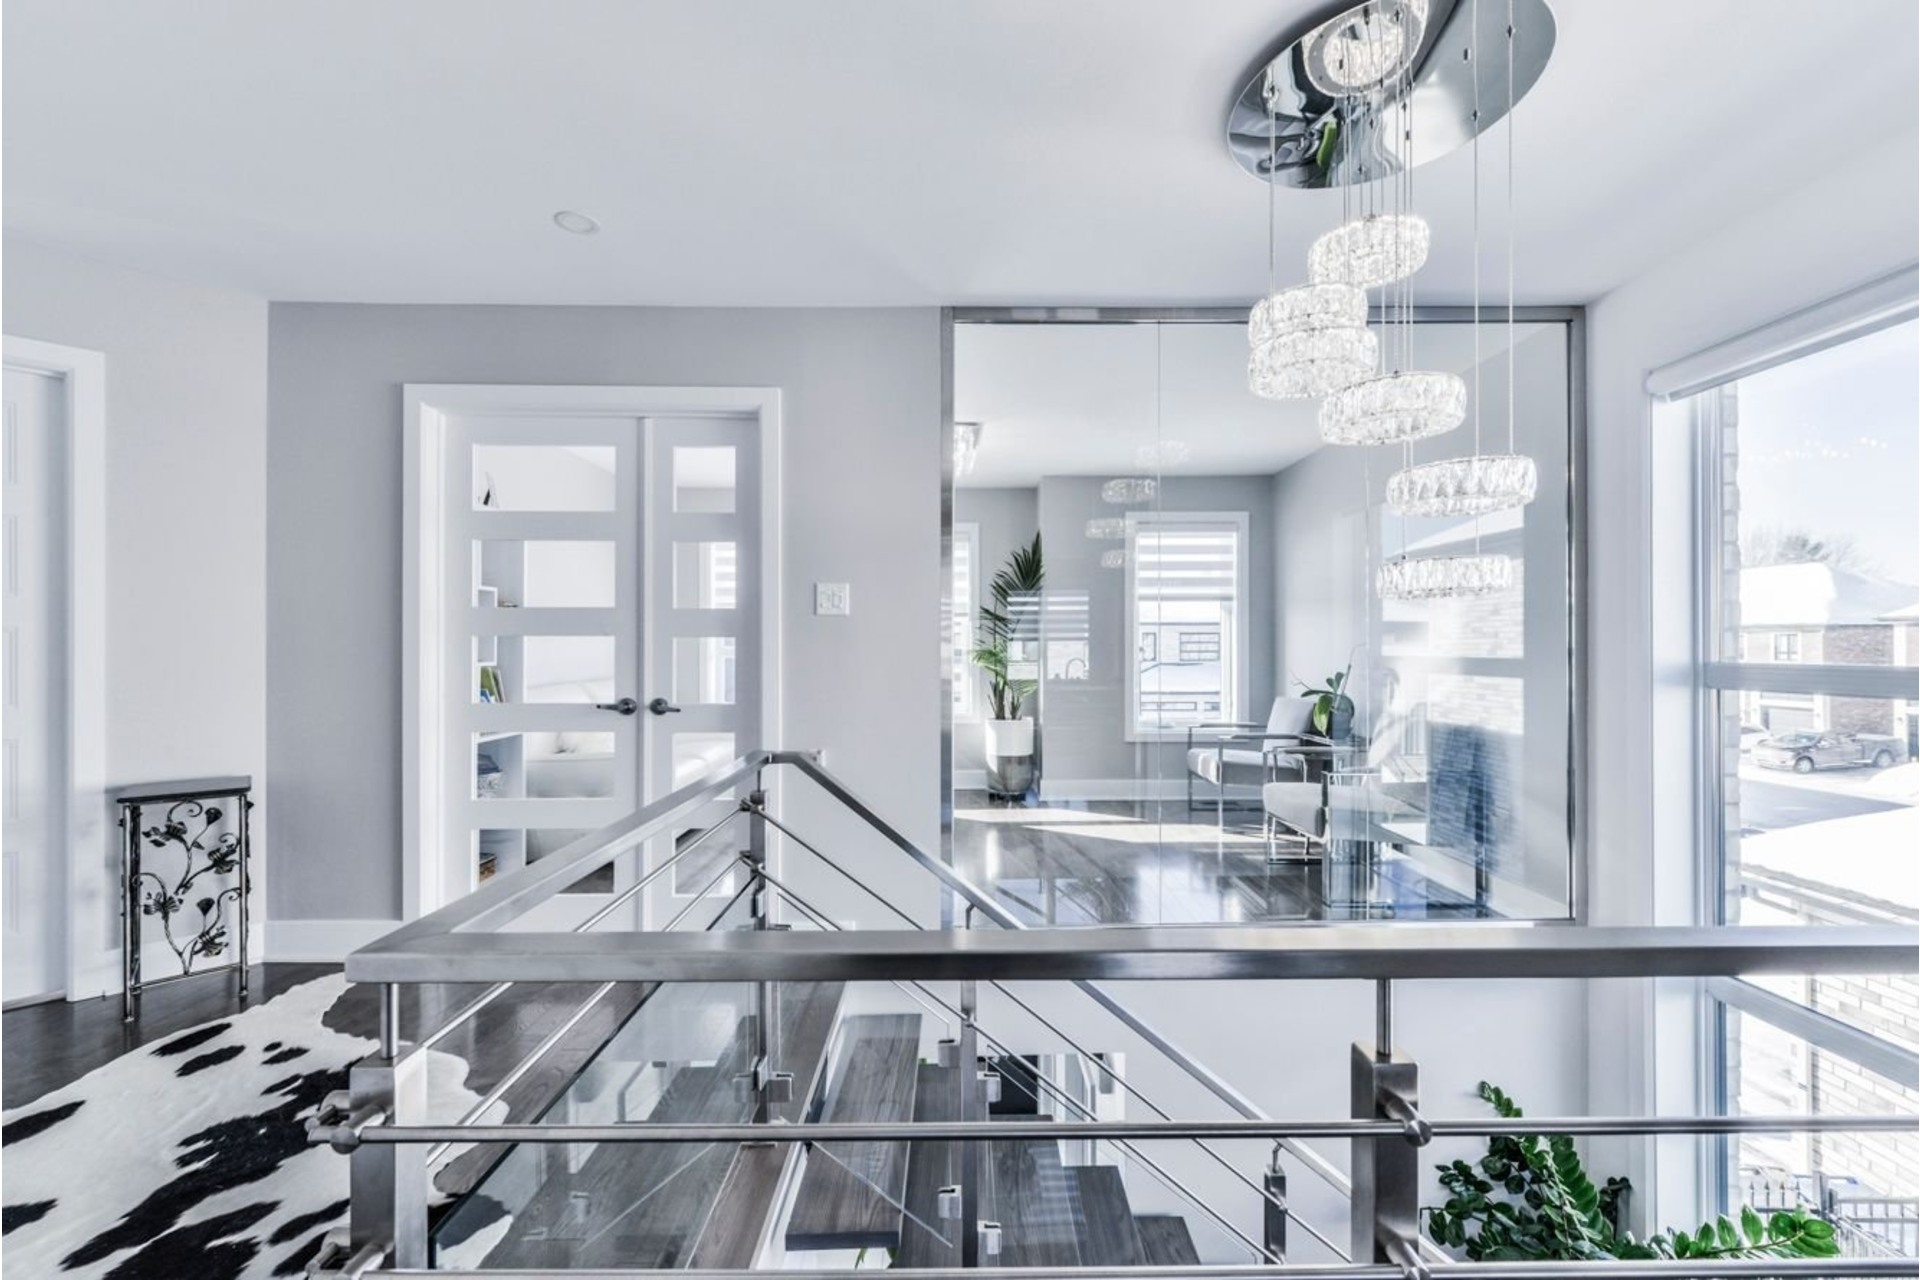 image 18 - House For sale Brossard - 7 rooms